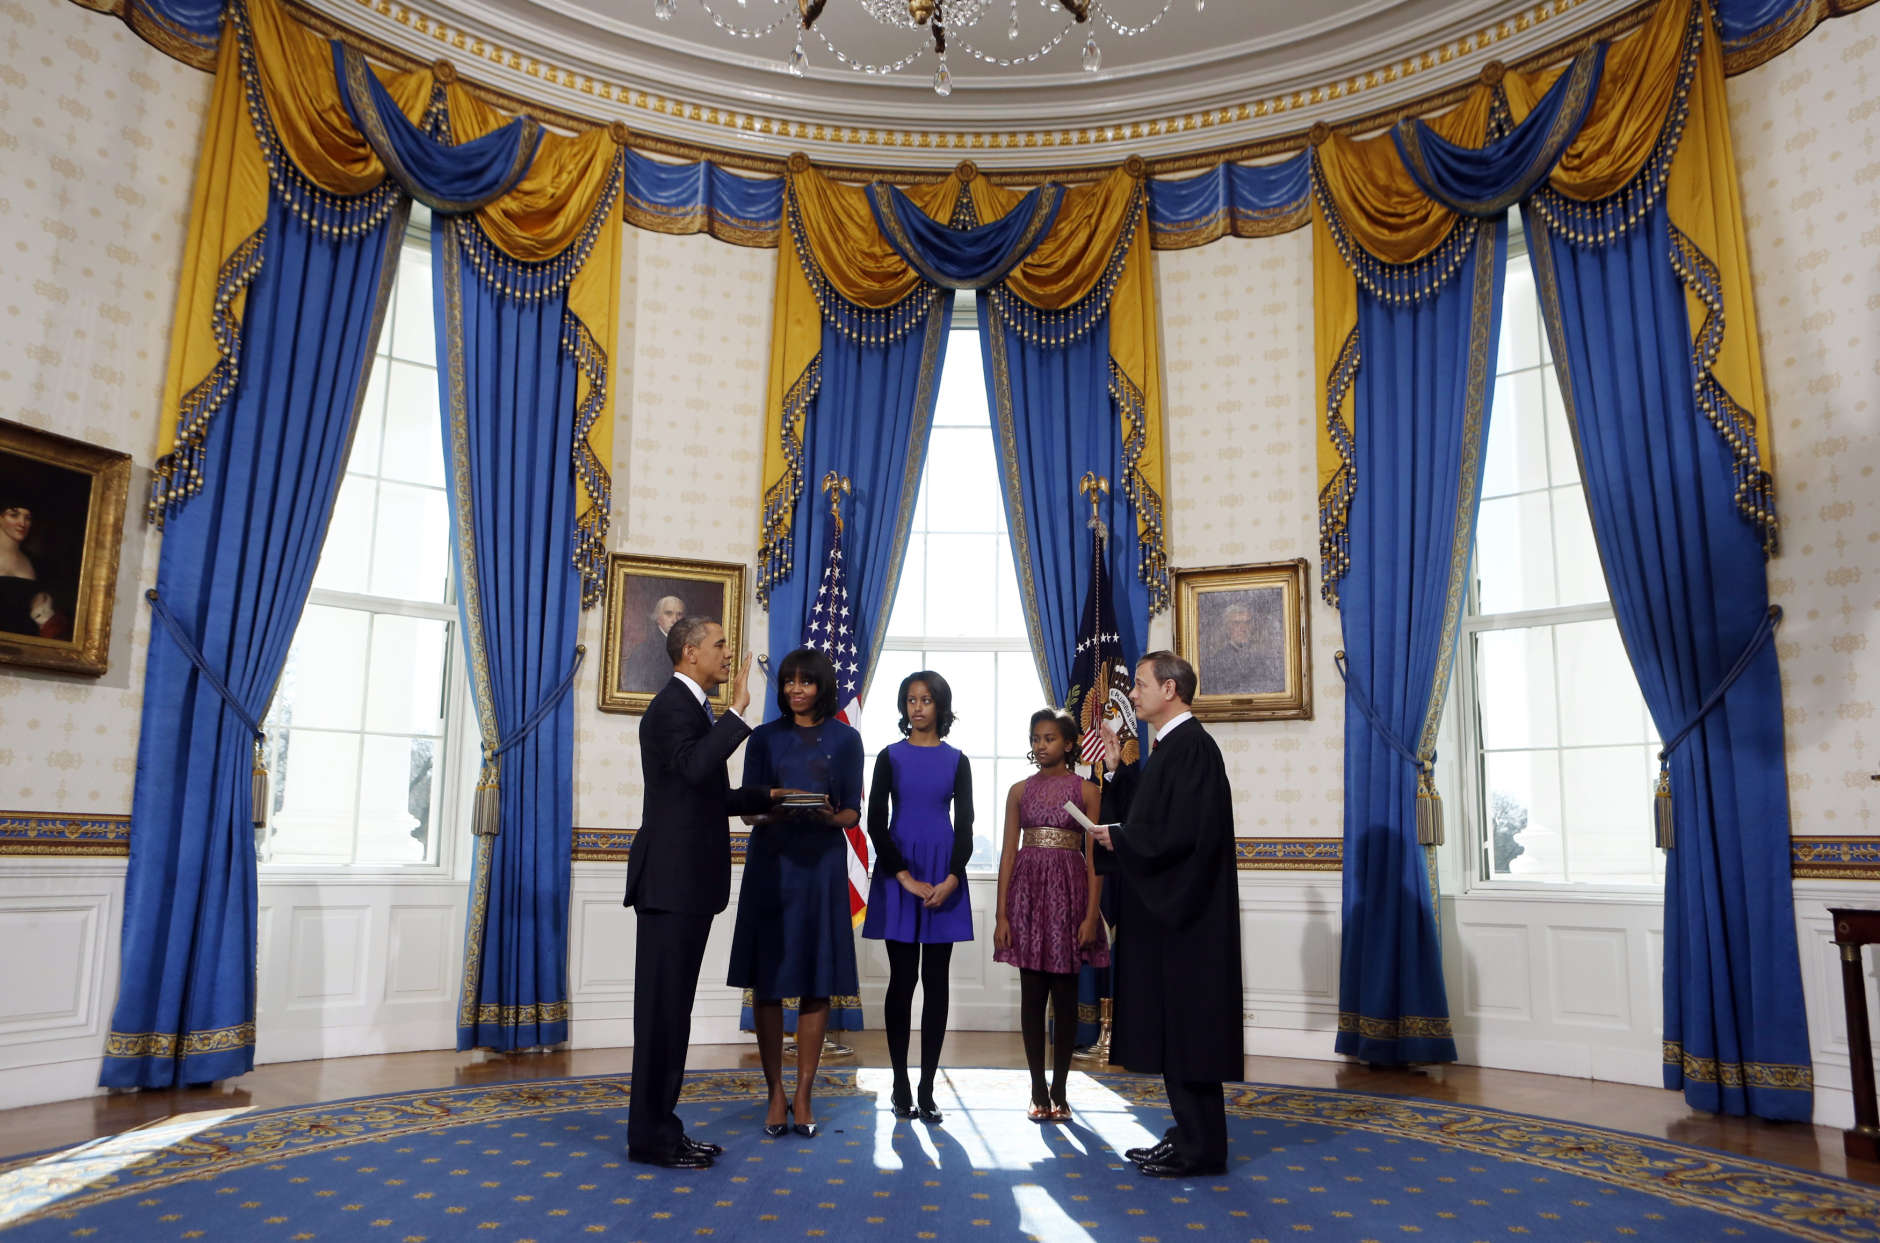 President Barack Obama is officially sworn-in by Chief Justice John Roberts in the Blue Room of the White House during the 57th Presidential Inauguration in Washington, Sunday, Jan. 20, 2013. Next to Obama are first lady Michelle Obama, holding the Robinson Family Bible, and daughters Malia and Sasha. (AP Photo/Larry Downing, Pool)